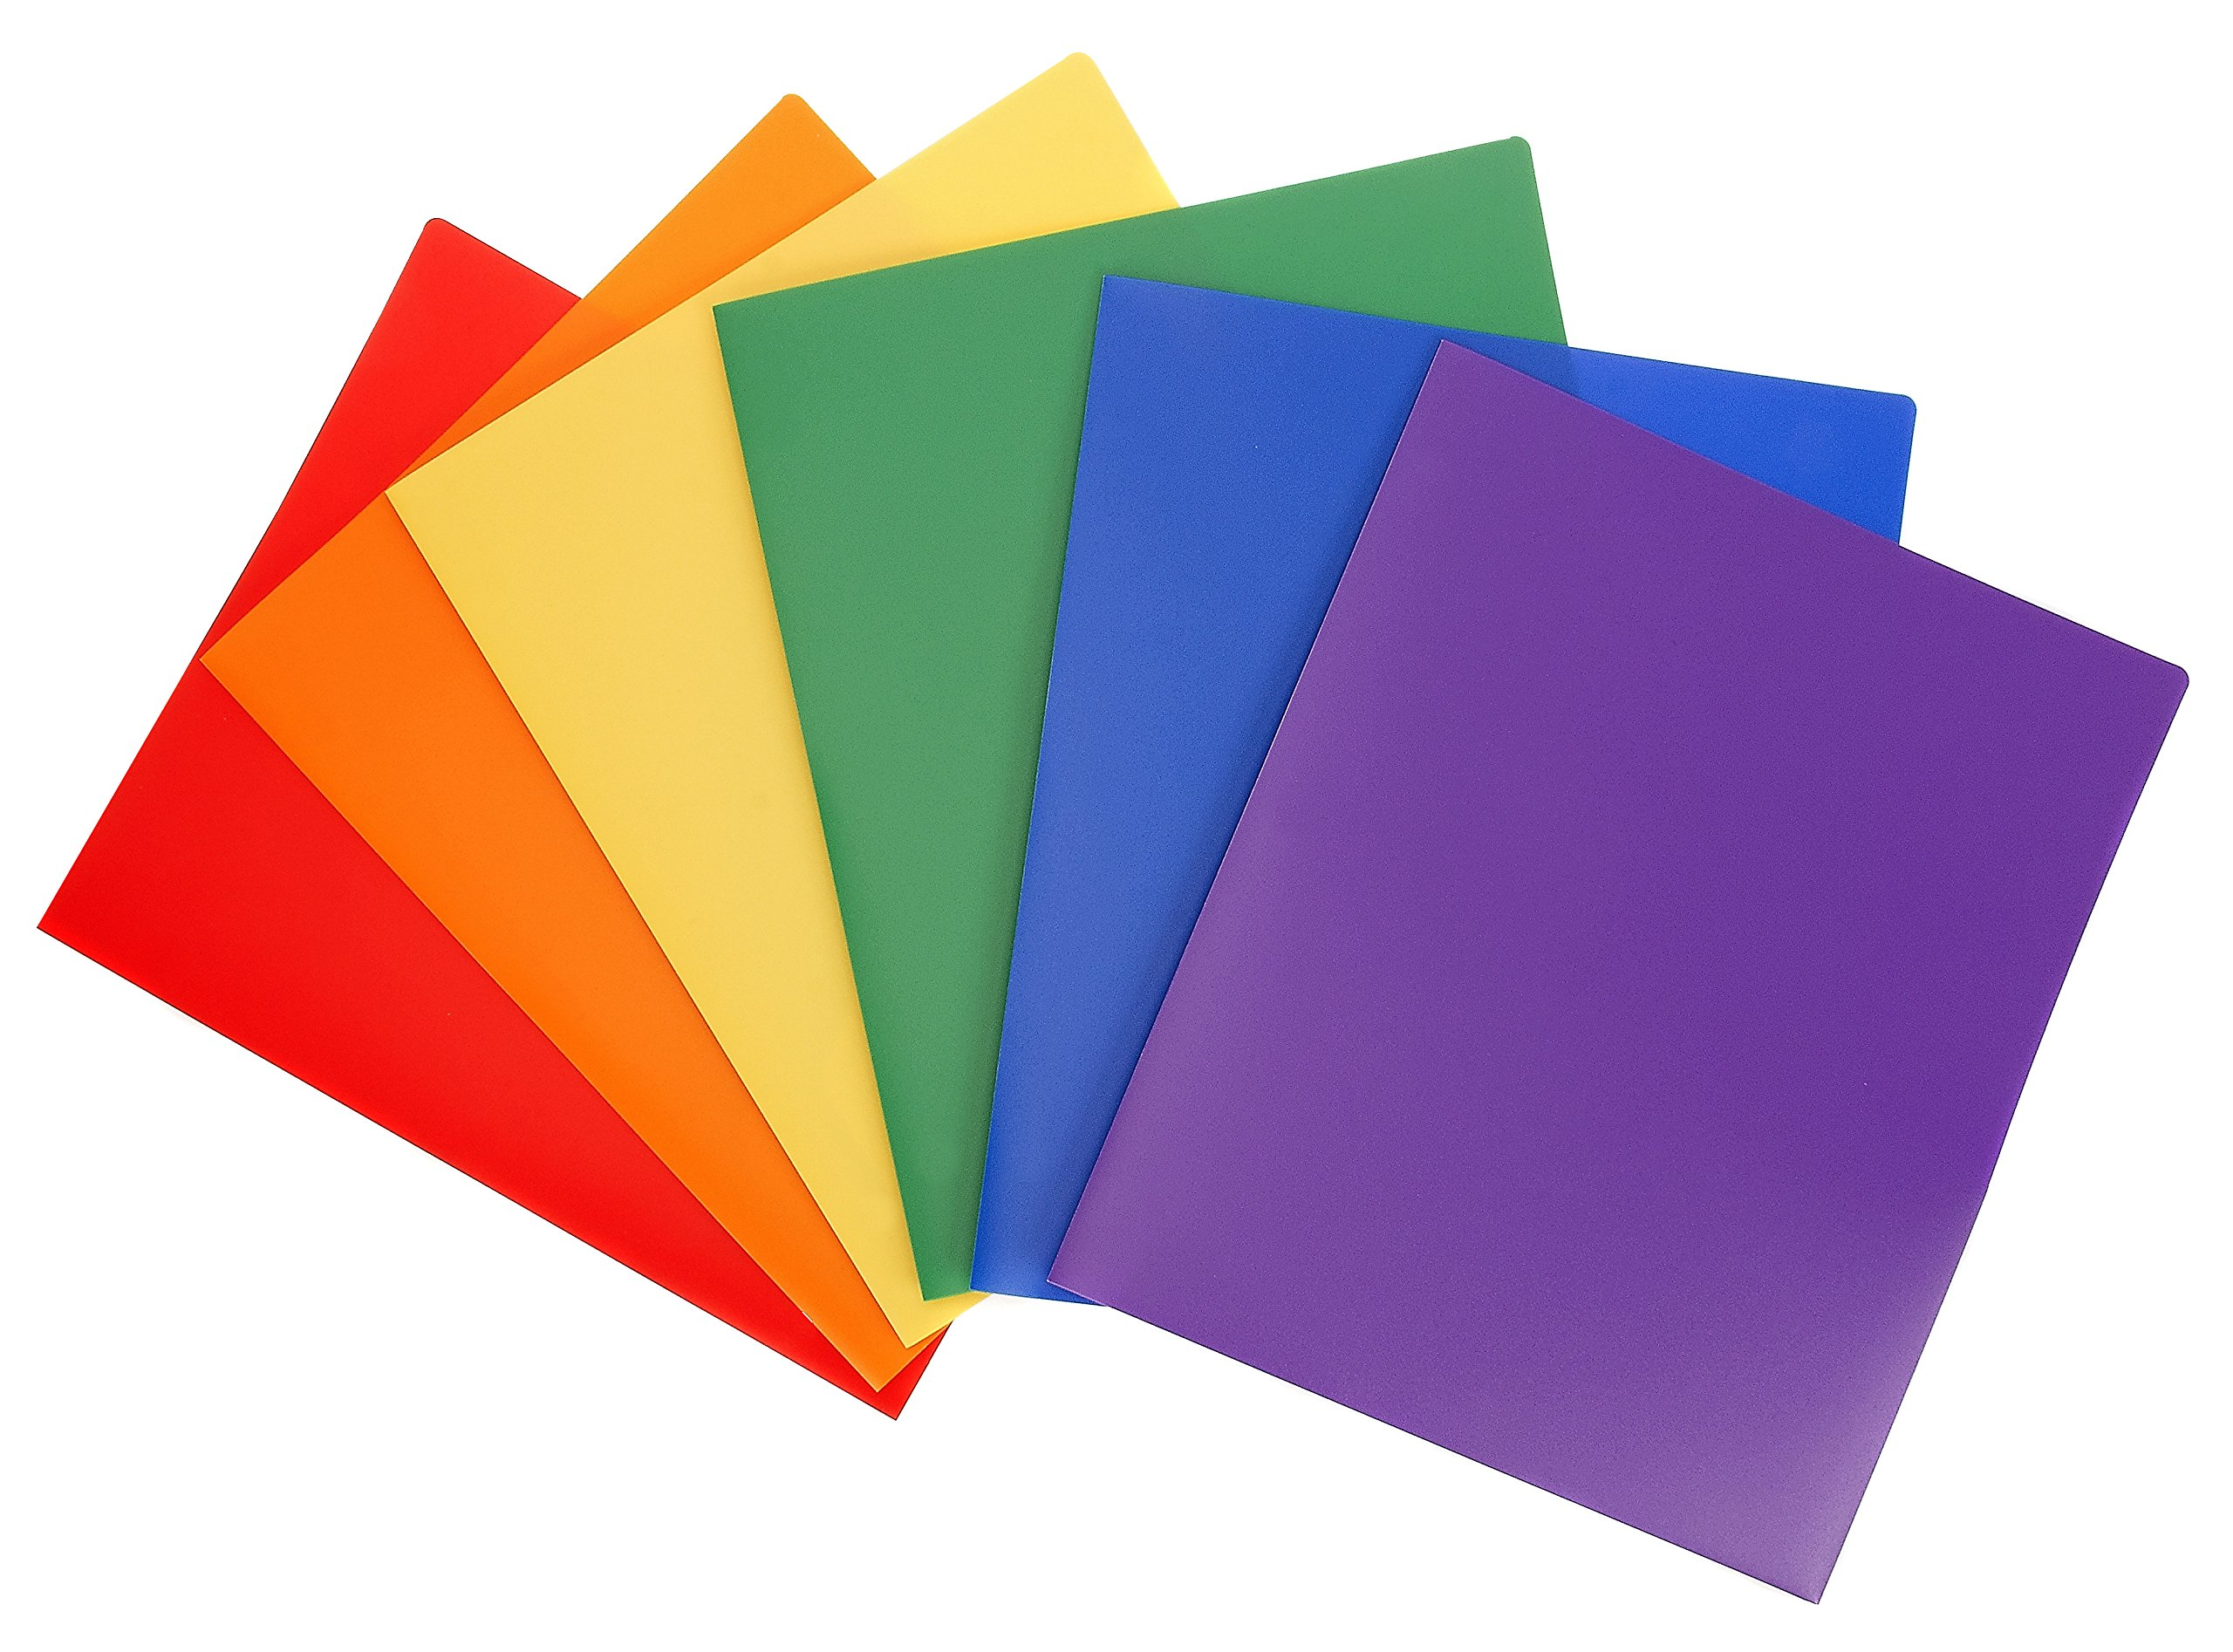 STEMSFX Heavy Duty Plastic 2 Pocket Folder (Pack of 6 Folders Assorted Colors) For Letter Size Papers, Includes Business Card Slot